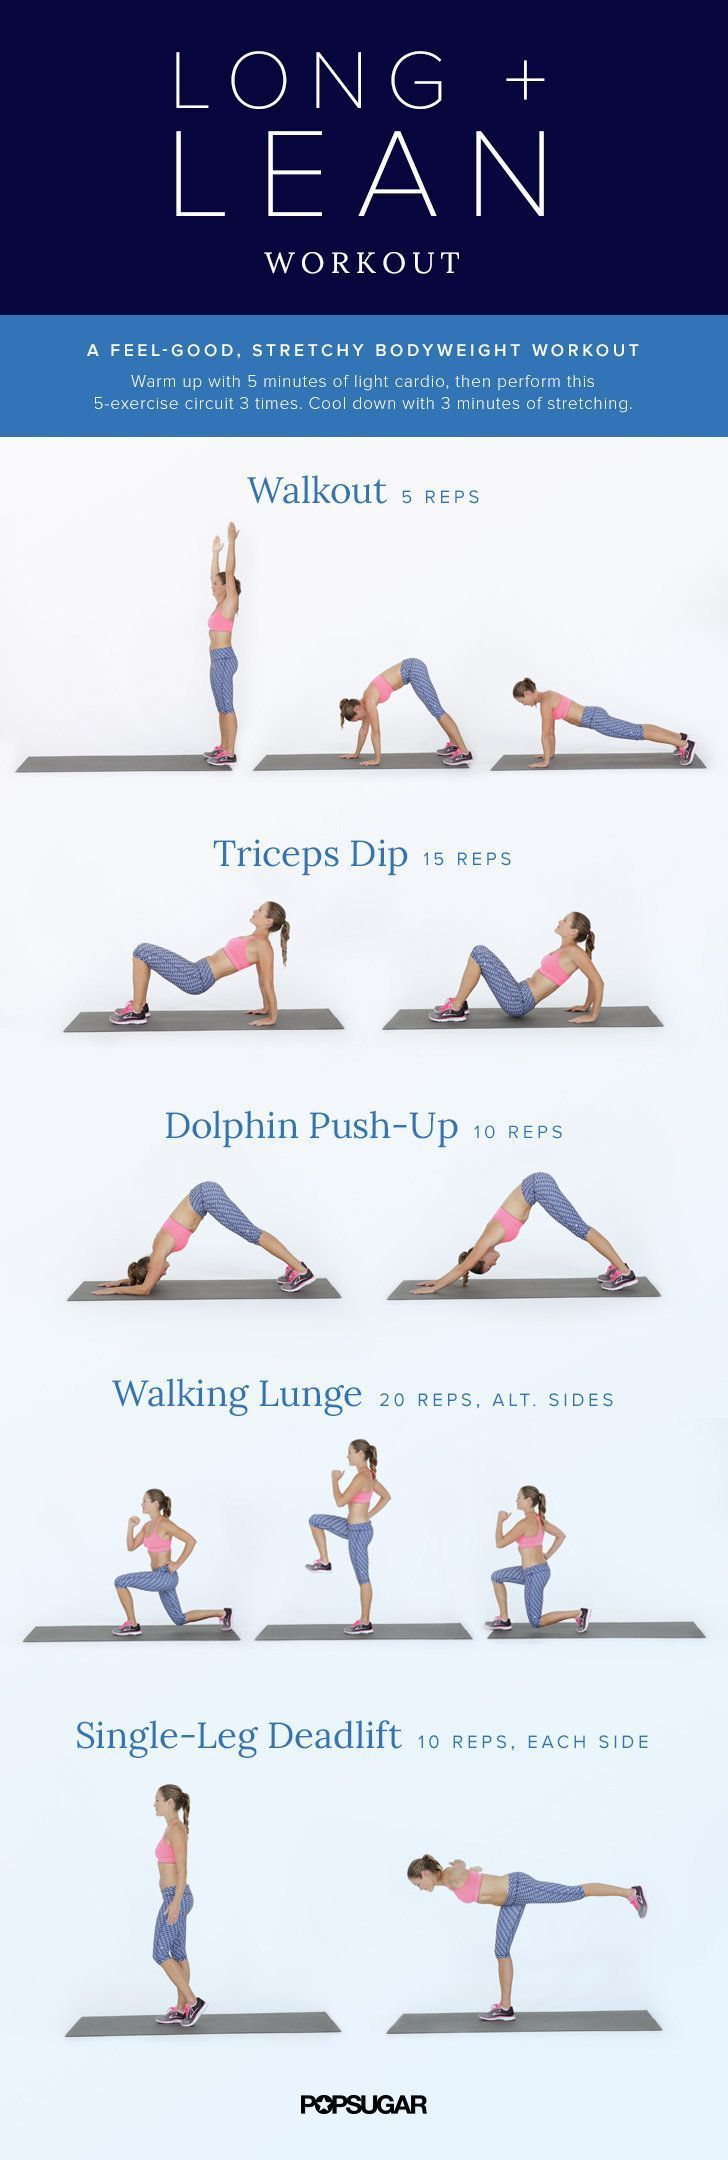 13 Printable No-Equipment At-Home Workouts to Try Now #fitness #exercises